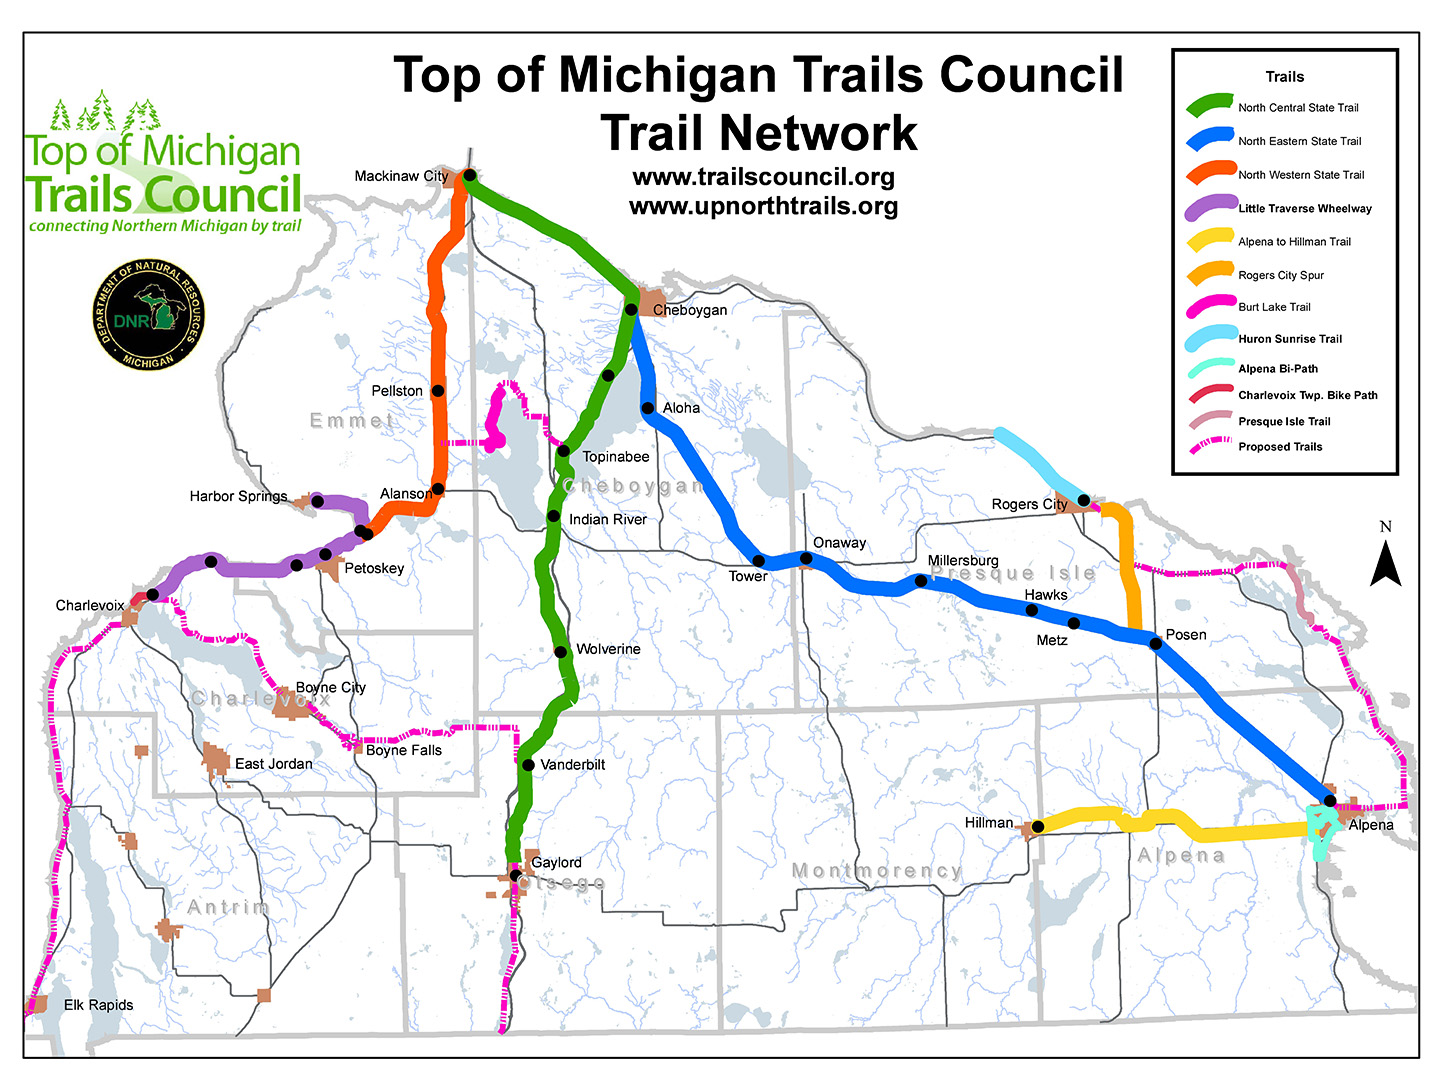 http://www.trailscouncil.org/wp-content/uploads/2016/09/trails-council-trails-network-map-large.jpg